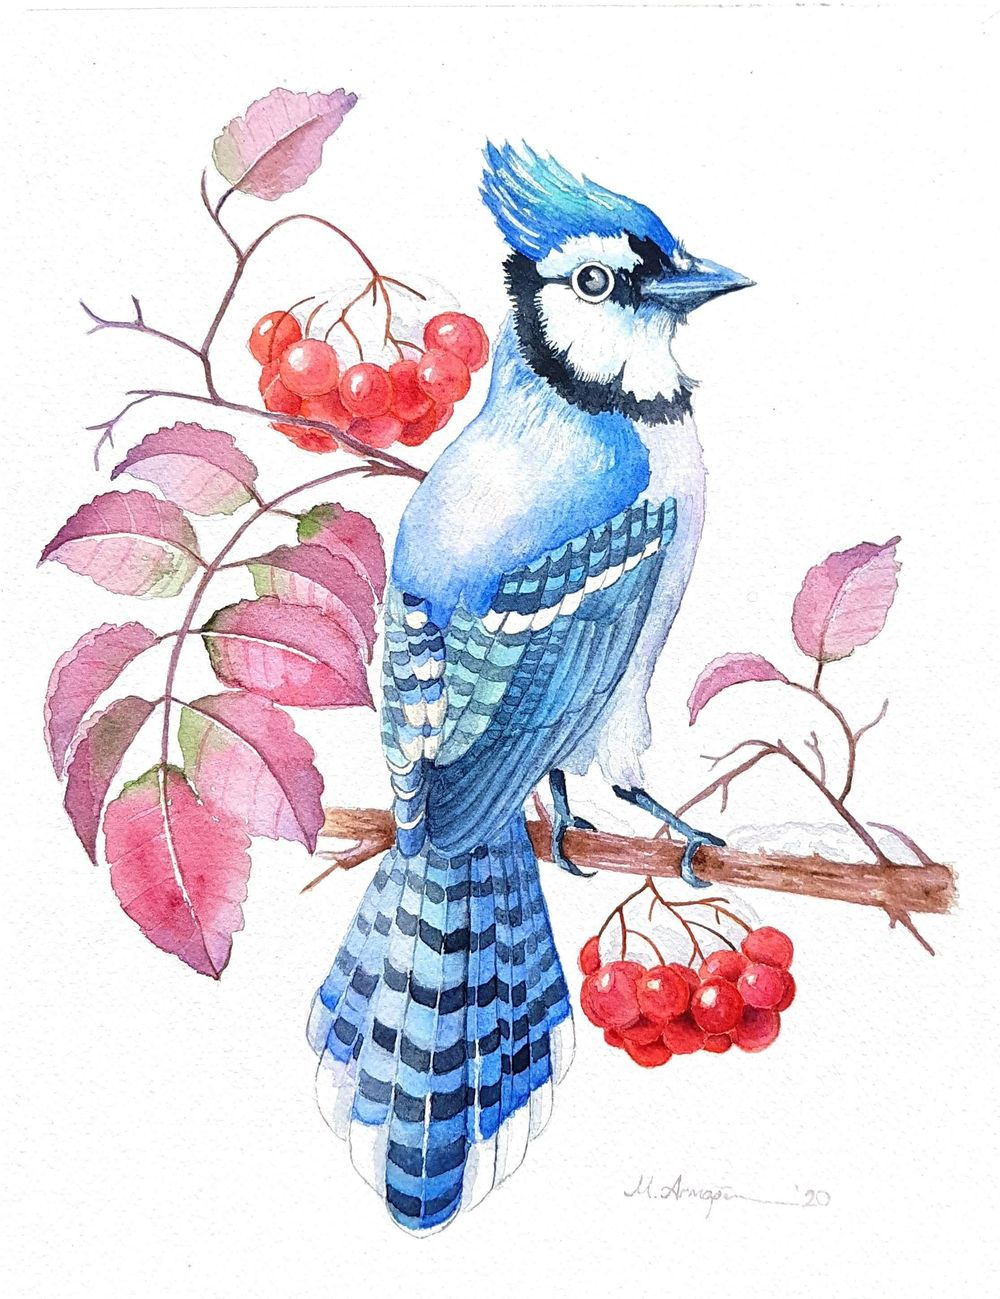 watercolor bluejay and rowan berries - image 2 - student project